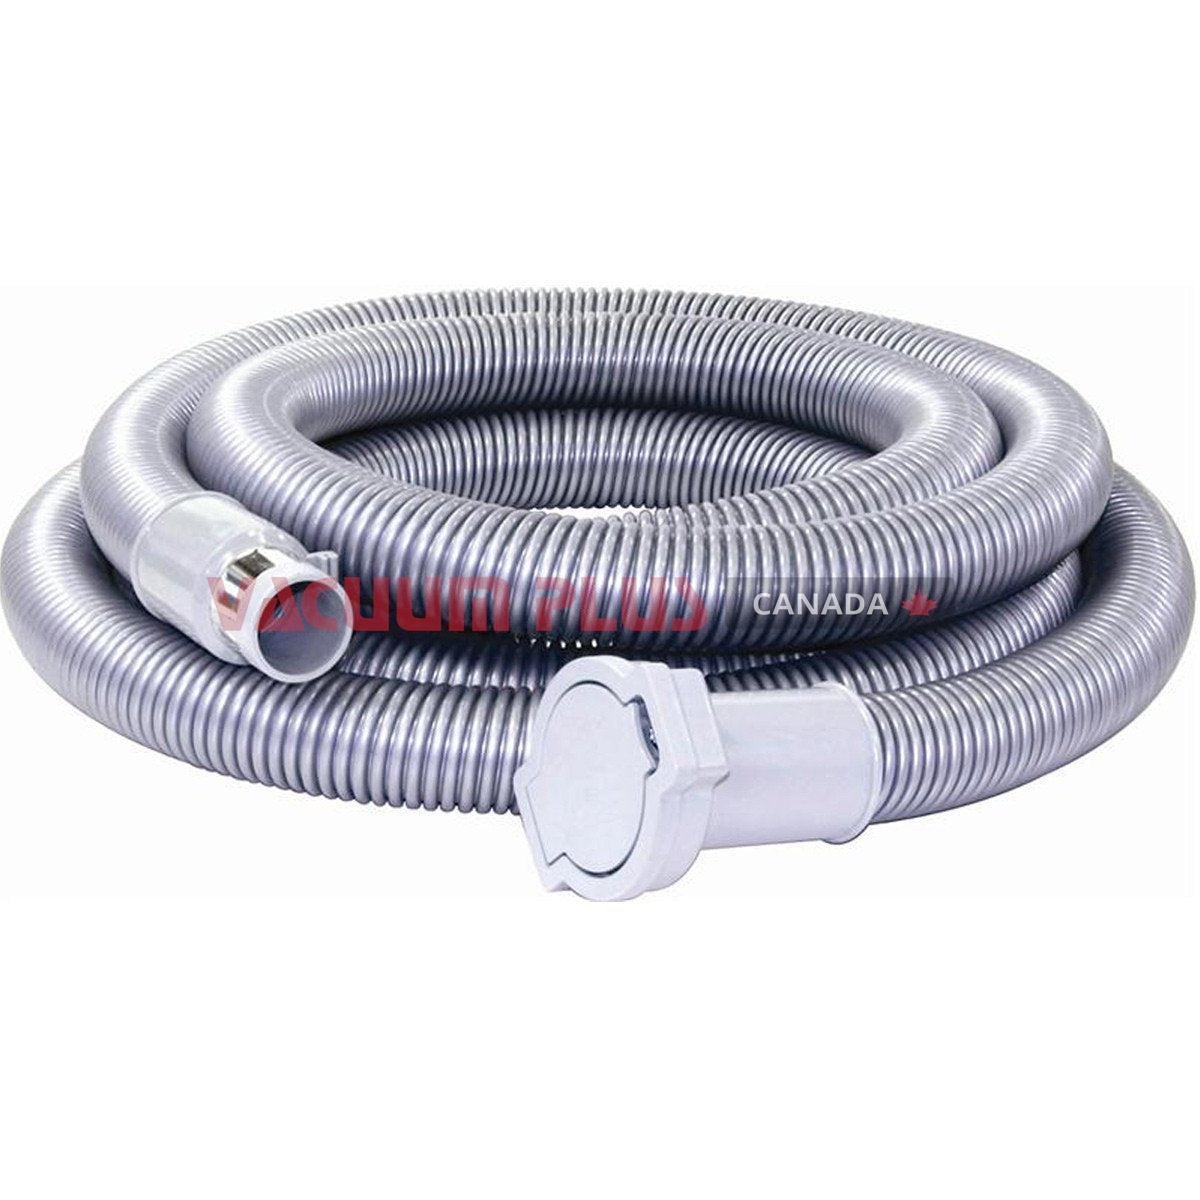 Central Vacuum Central Vacuum Extension hose 18ft Central Vacuum Hose & Tool Sets  - Vacuum Plus Canada